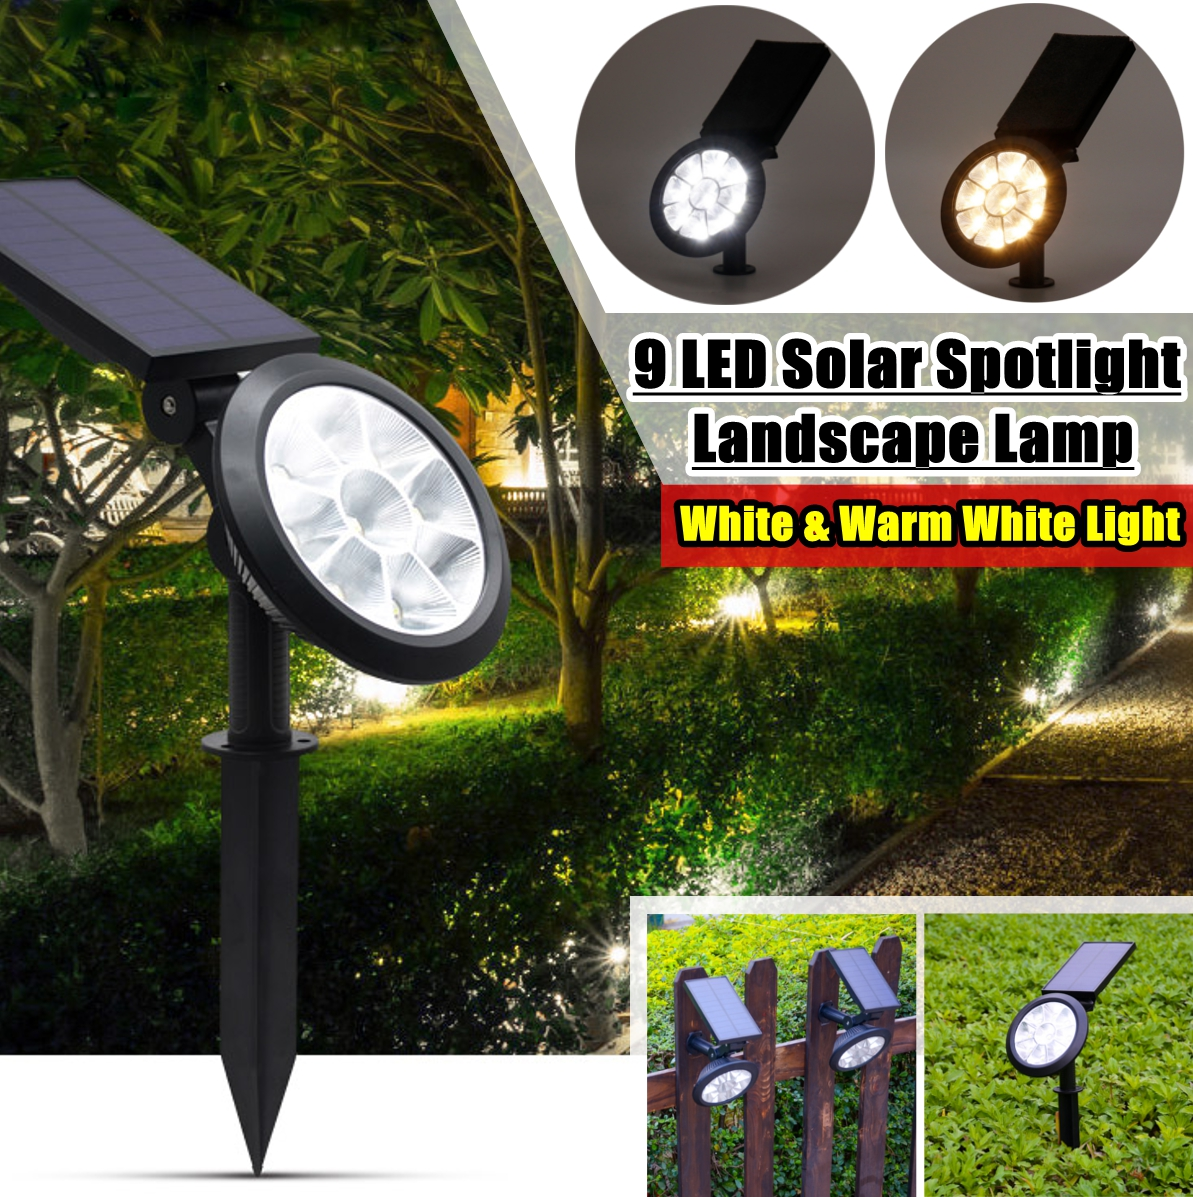 1 Pcs 9 Led Solar Landscape Spotlights Ip67 Waterproof Solar Powered Wall Lights 2 In 1 Wireless Outdoor Solar Landscaping Light For Yard Garden Driveway Porch Walkway Pool Patio Walmart Com Walmart Com